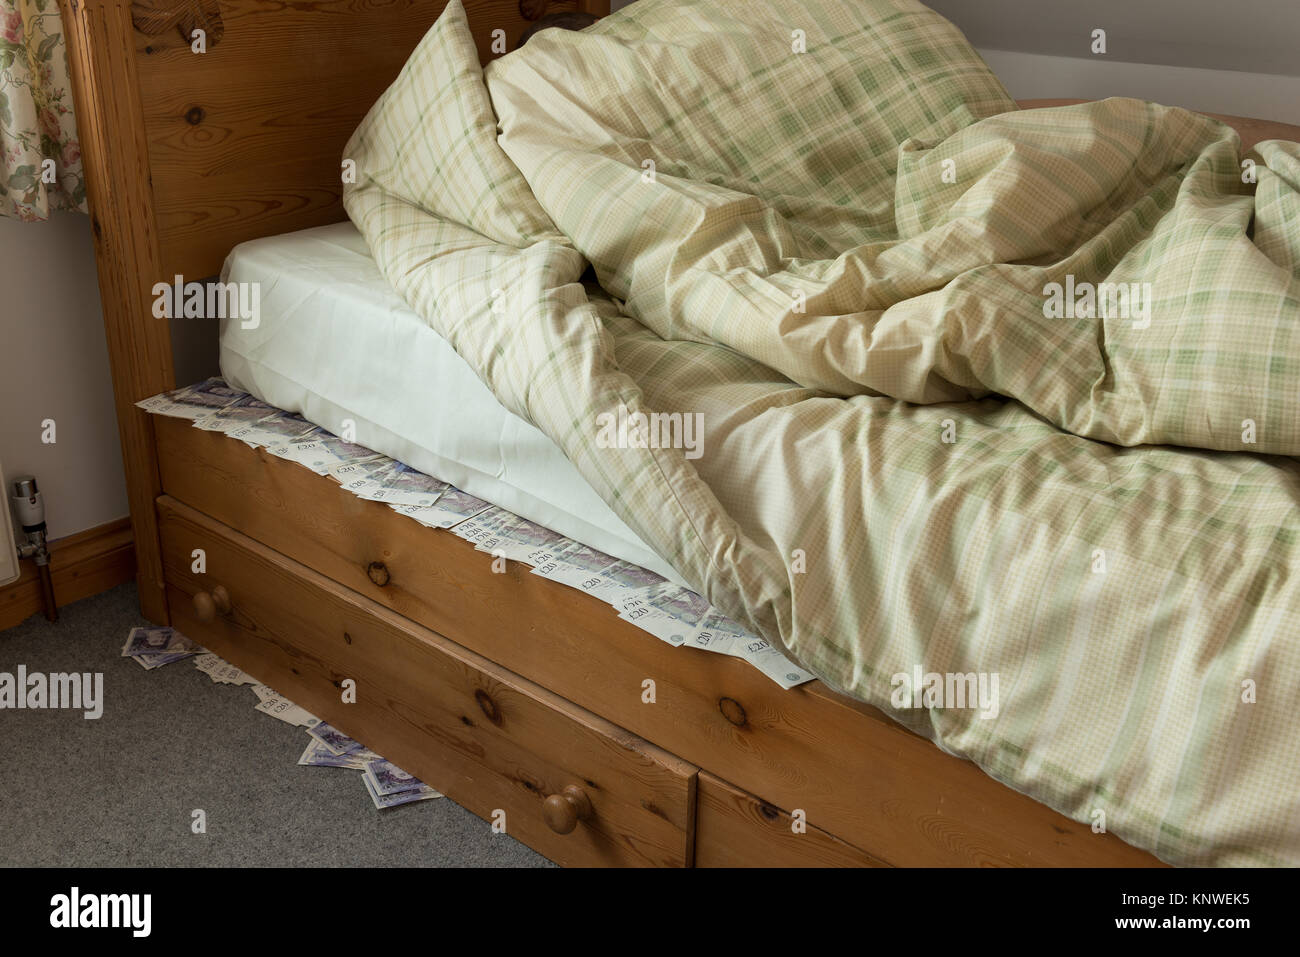 Sleeping On Top Of Stashed Cash Money Banknotes Under The Bed Stock Photo Alamy